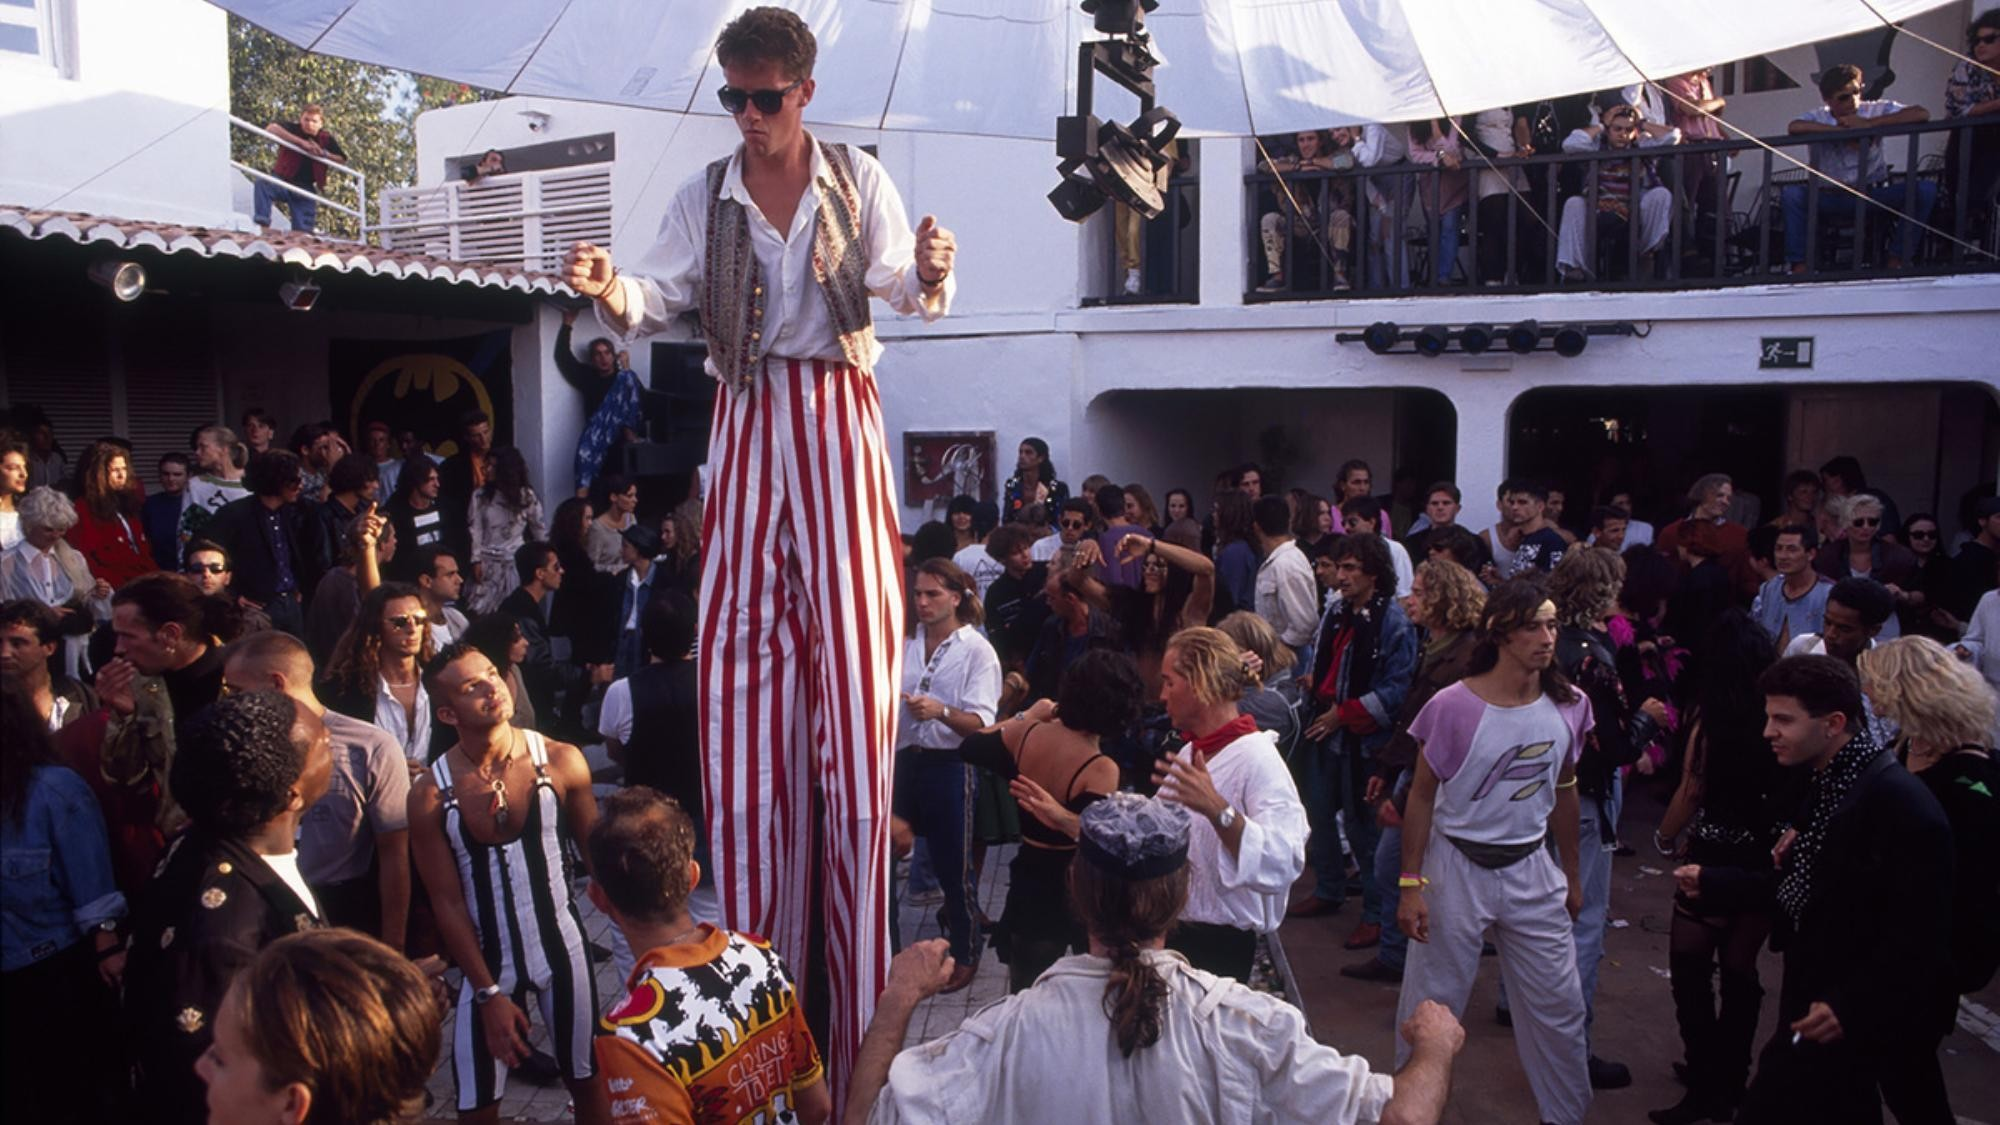 ibiza style: its roots, its origins, and its realities